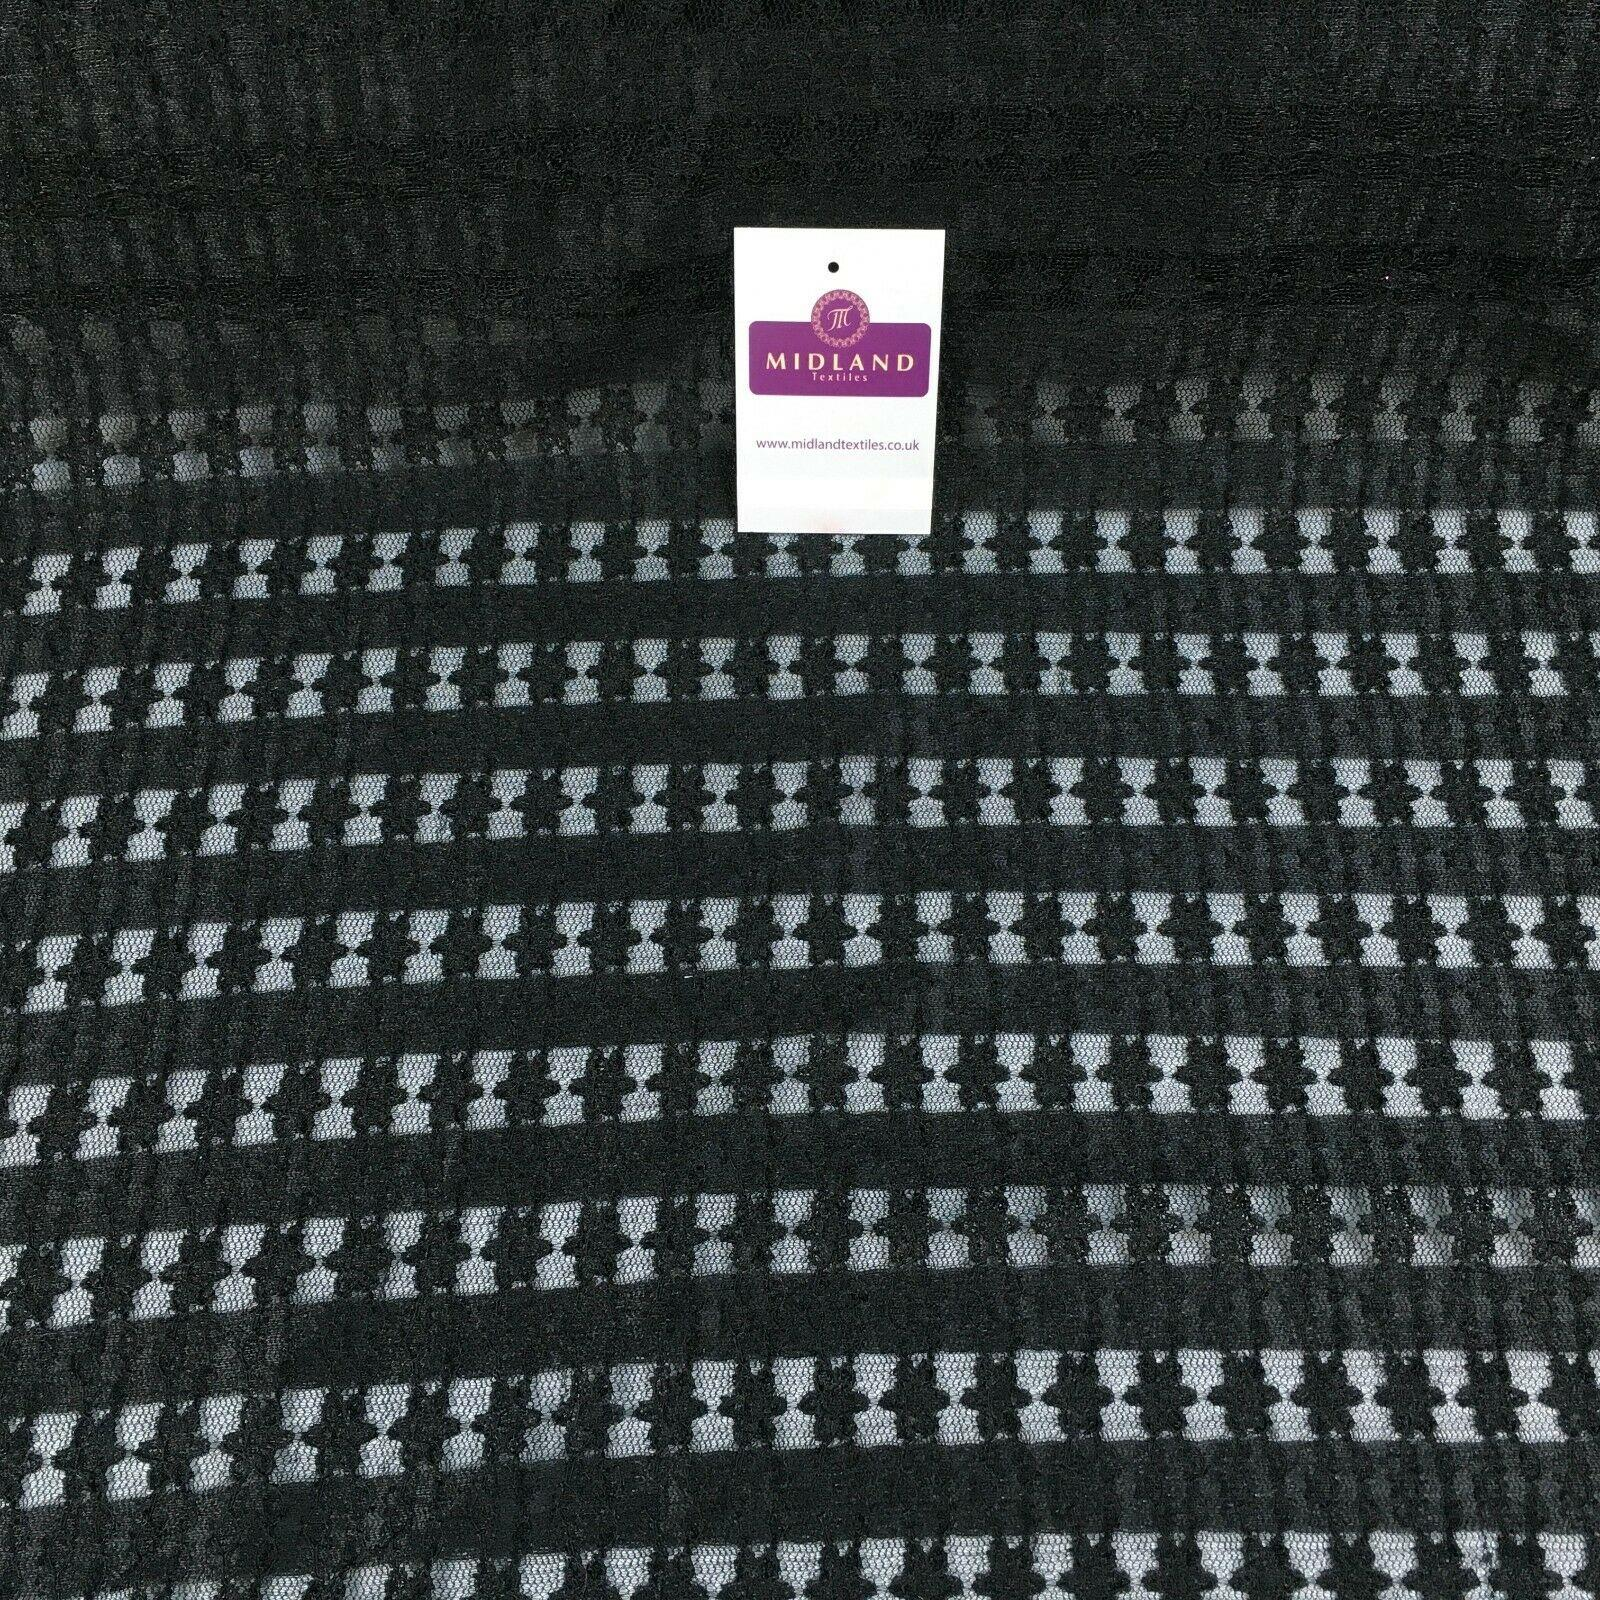 Black net stretch spandex Stretch mesh Fabric 139cm M186-45 Mtex